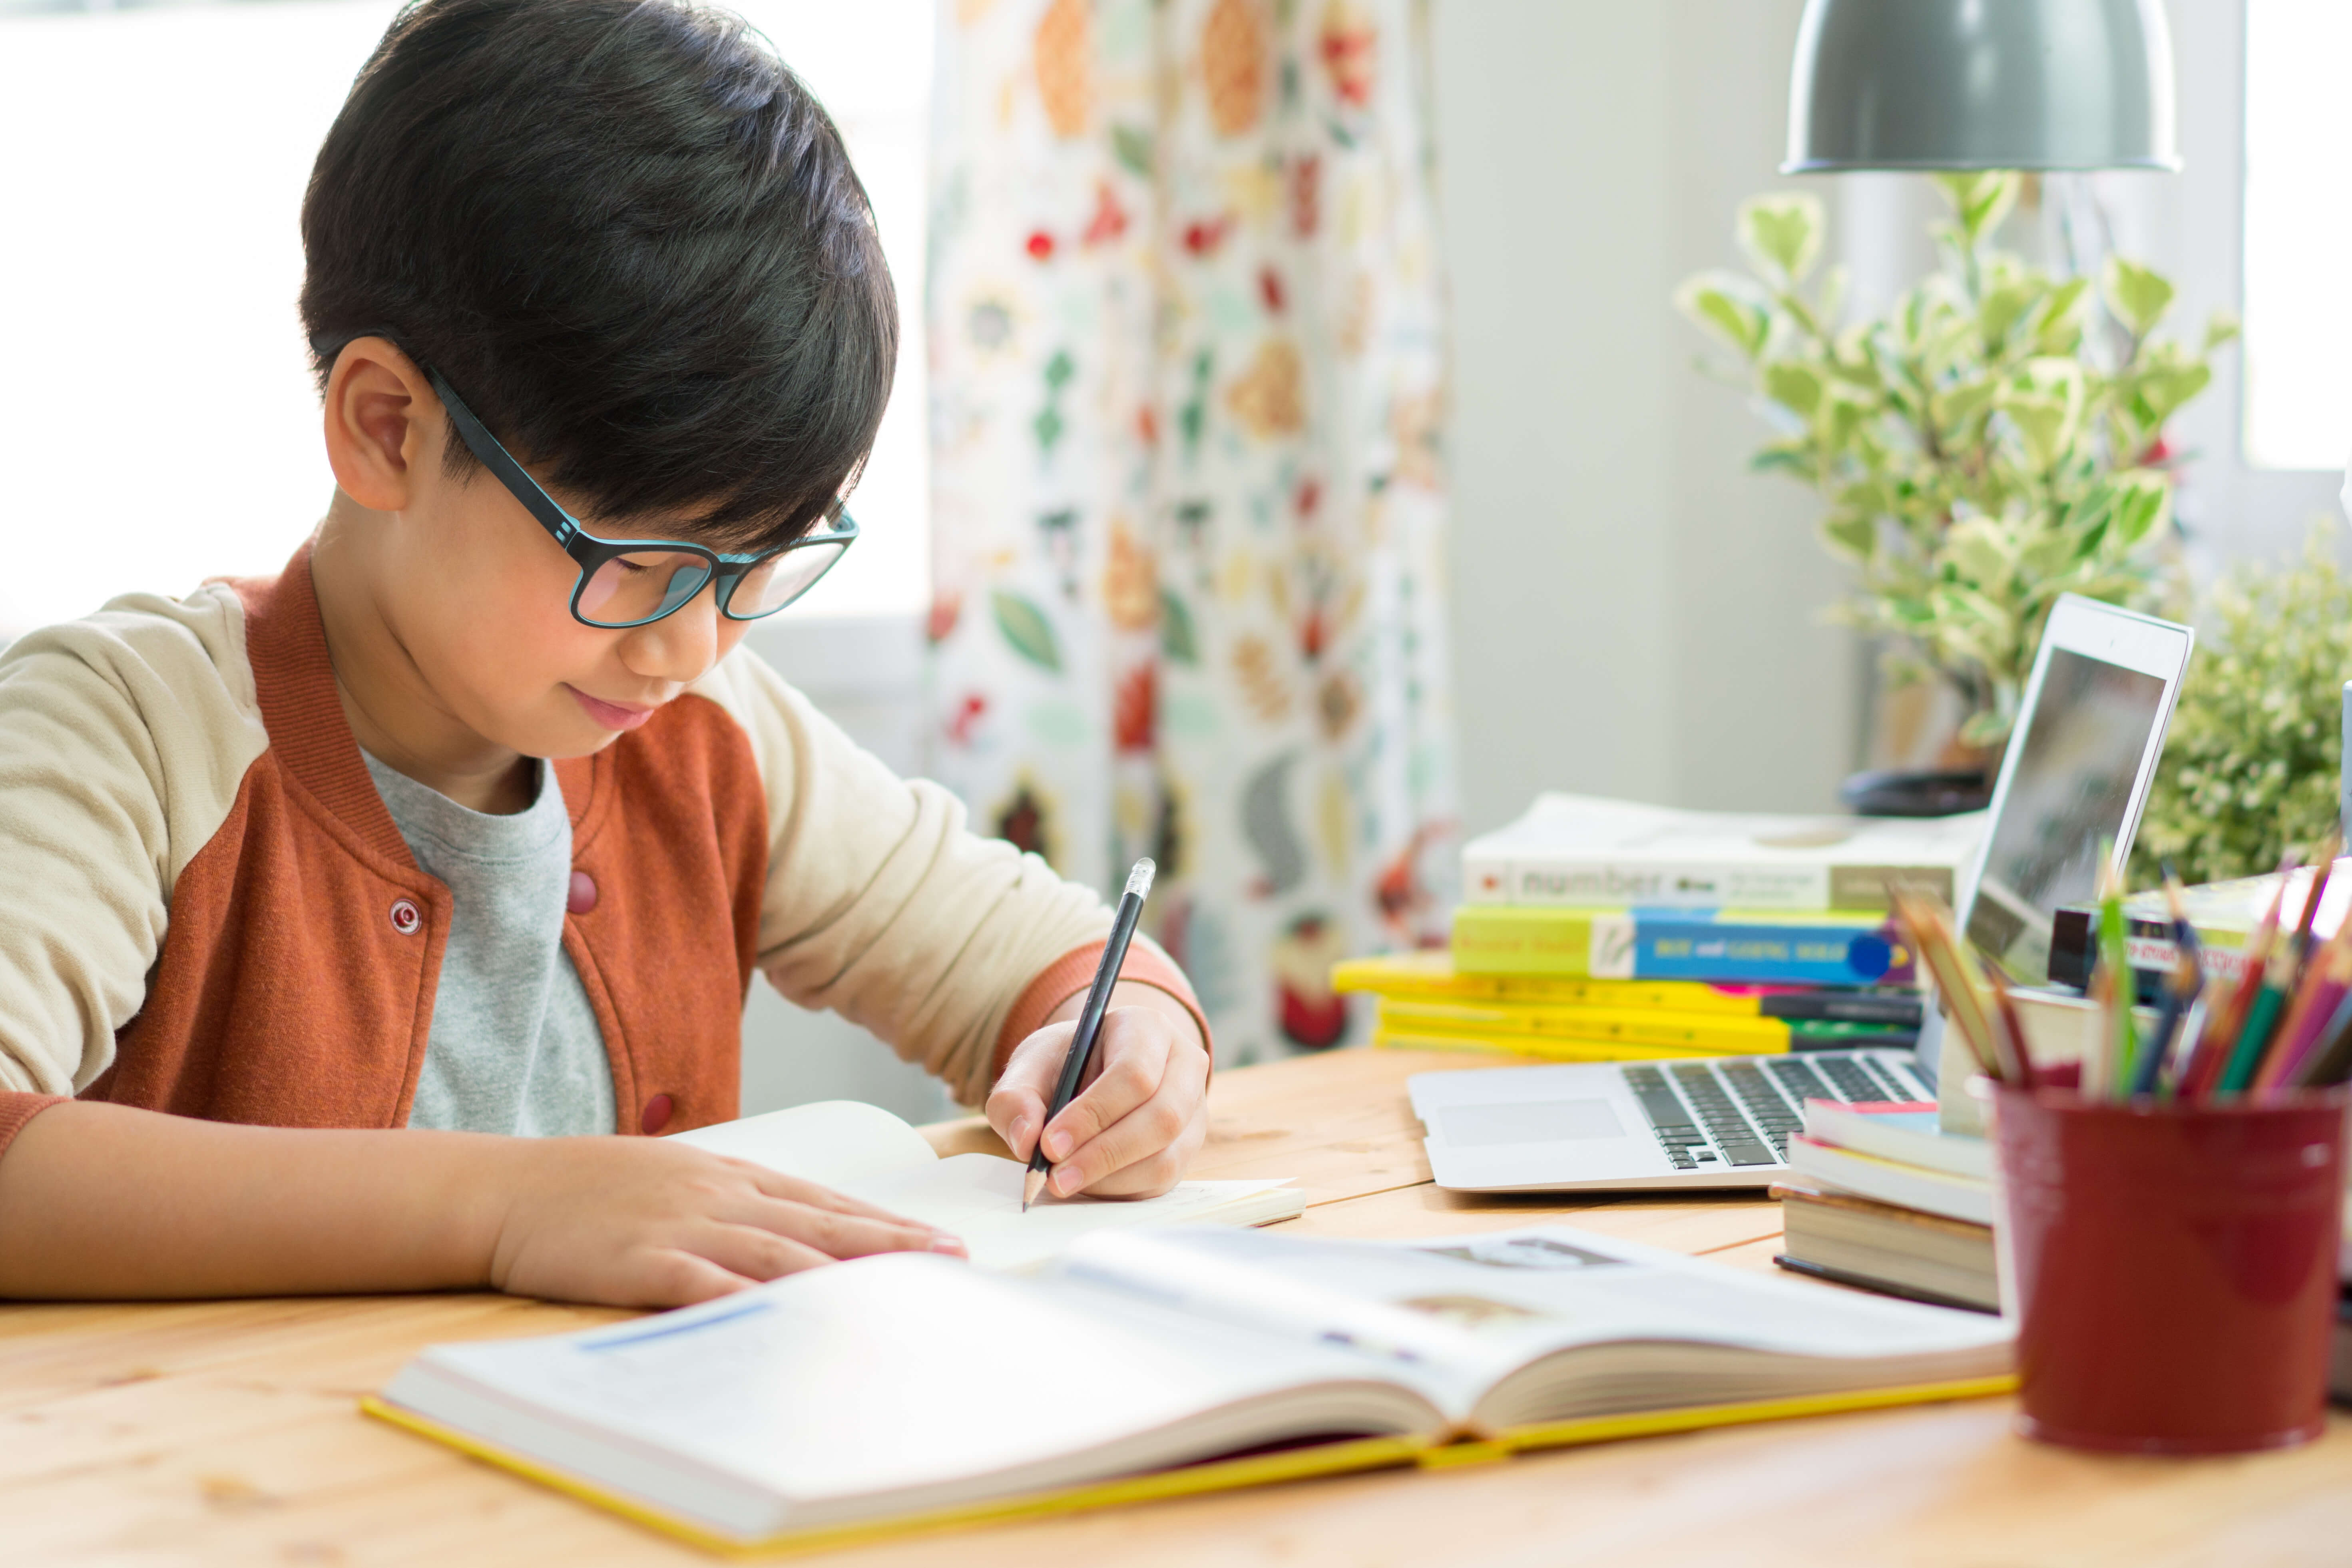 How to get an American education without leaving home